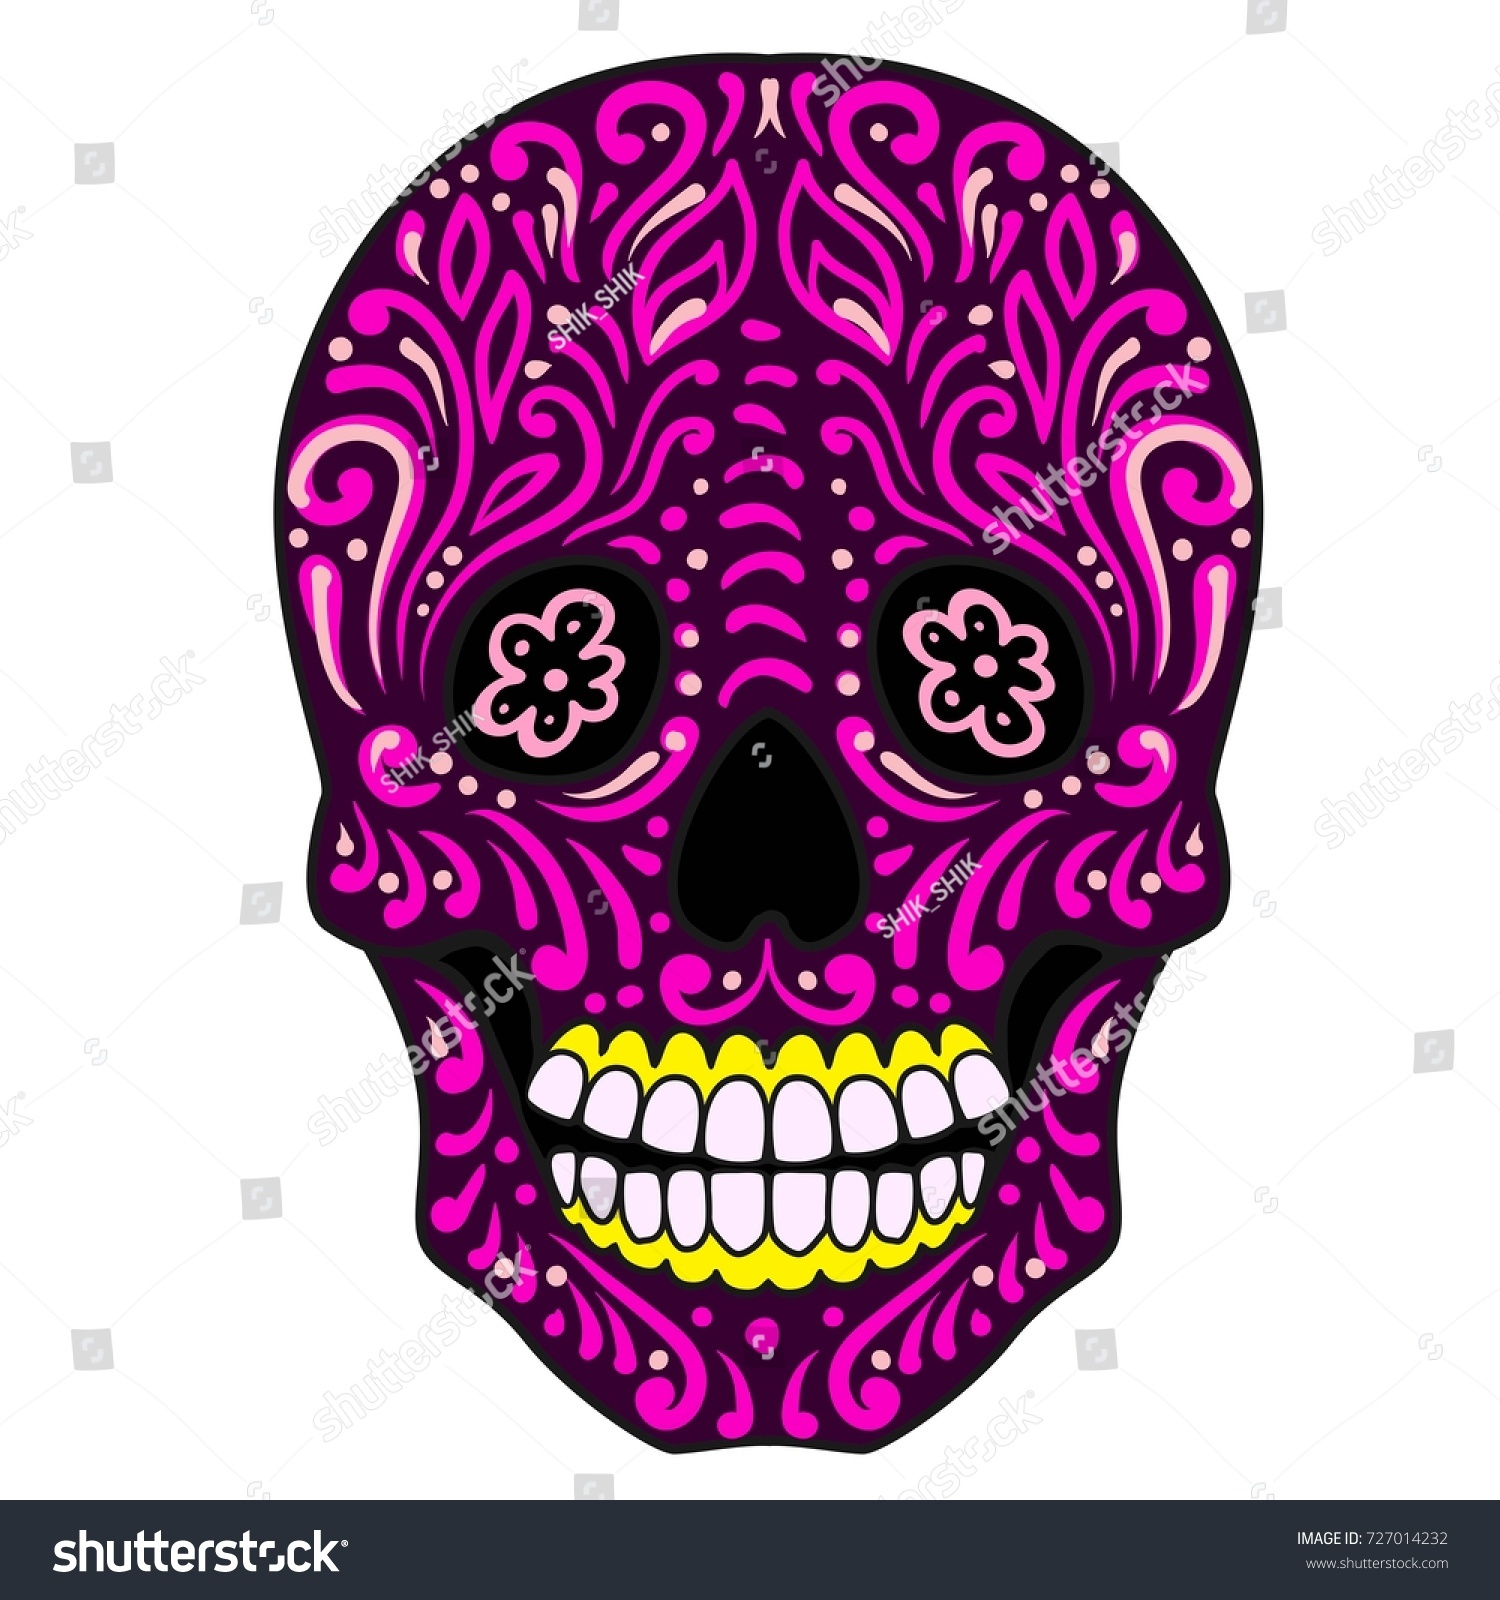 Ornate Sugar Skulllavera Is The Mexican National Symbol Of The